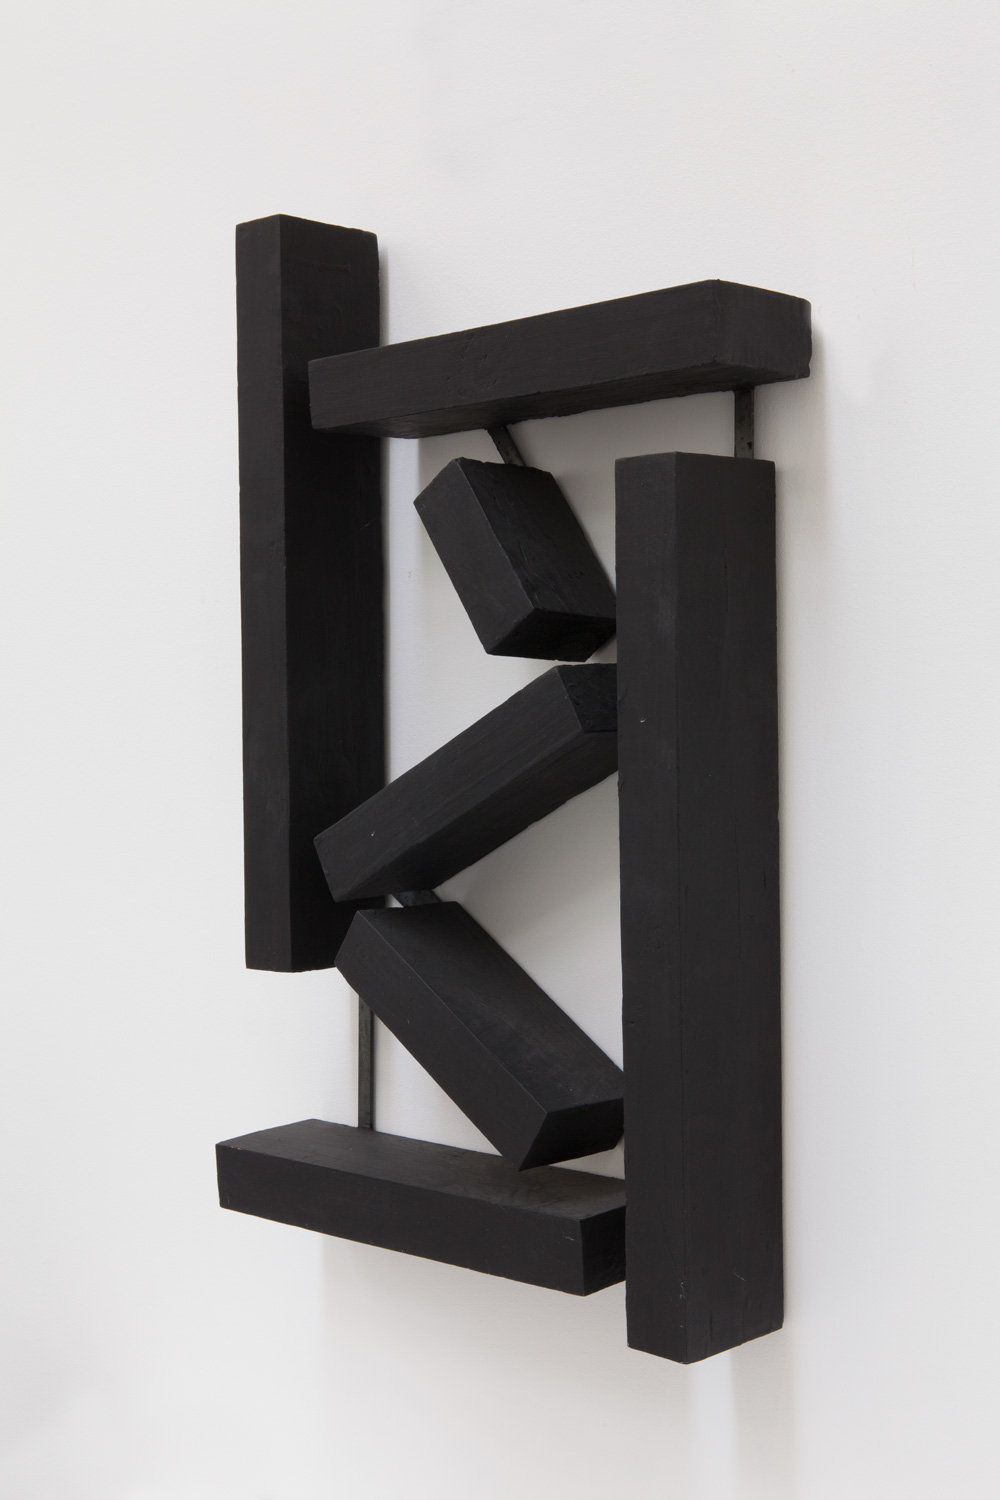 Incomplete Structure , 2005 不完構 ( Fukankō ) Wood, acrylic 26 x 15 15/16 x 3 3/4 inches 66 x 40.5 x 9.5 cm